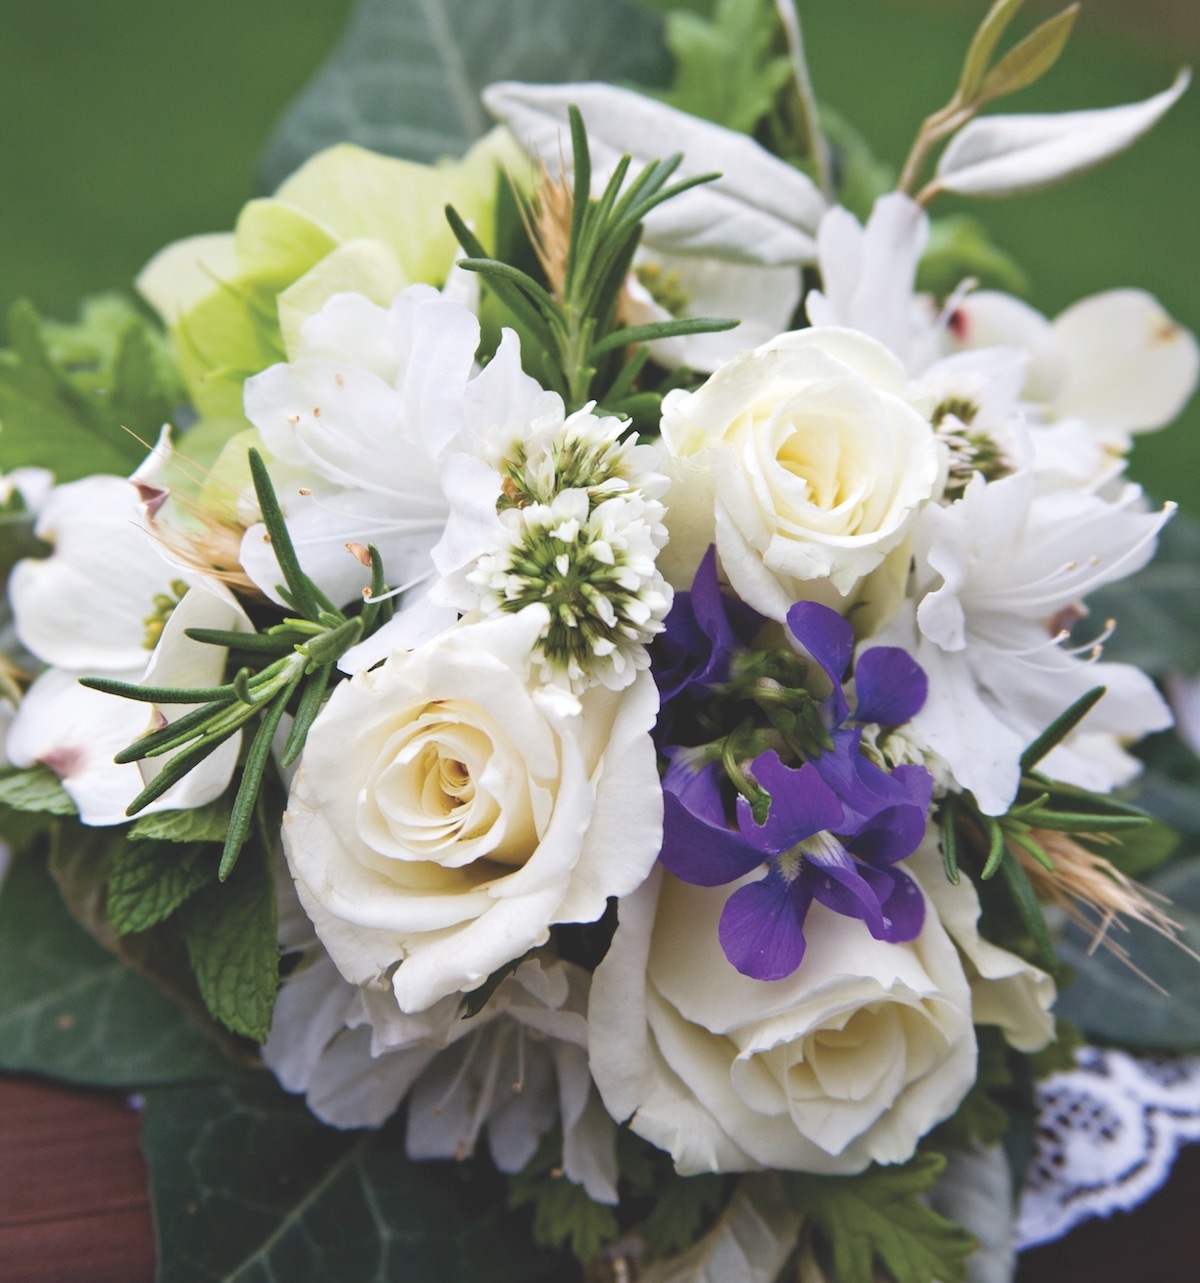 The symbolic meanings of flowers and herbs flower magazine white tussie mussie wedding flowers meanings of flowers izmirmasajfo